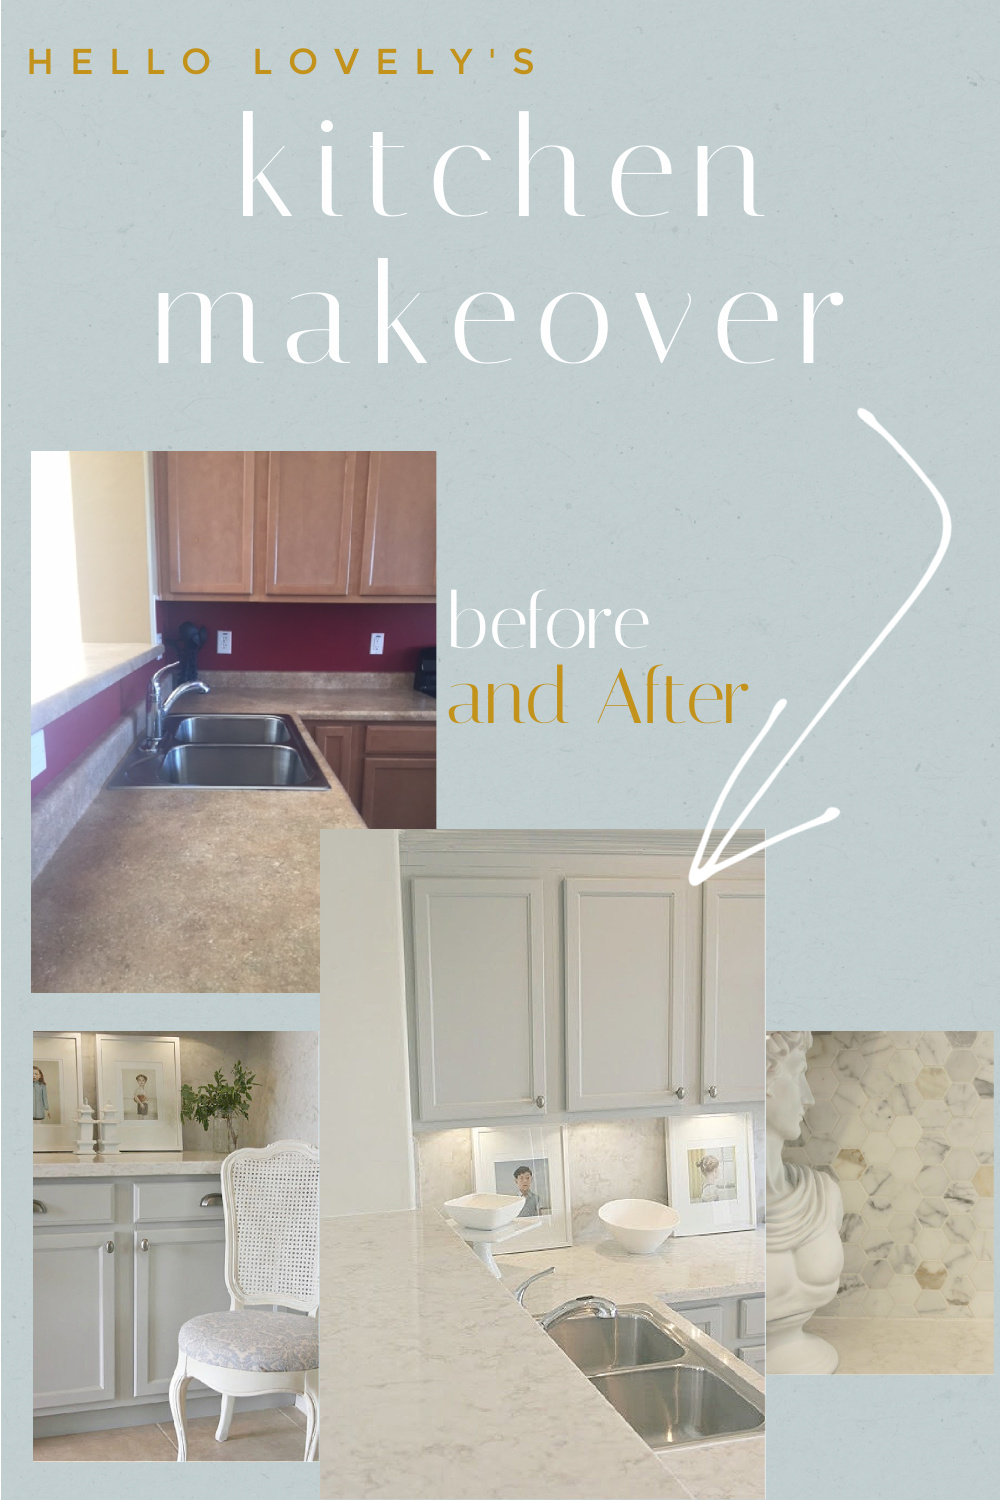 Hello Lovely's Kitchen Makeover before and after - Hello Lovely Studio. #beforeandafter #kitchendesign #diykitchenreno #renovations #kitchenmakeovers